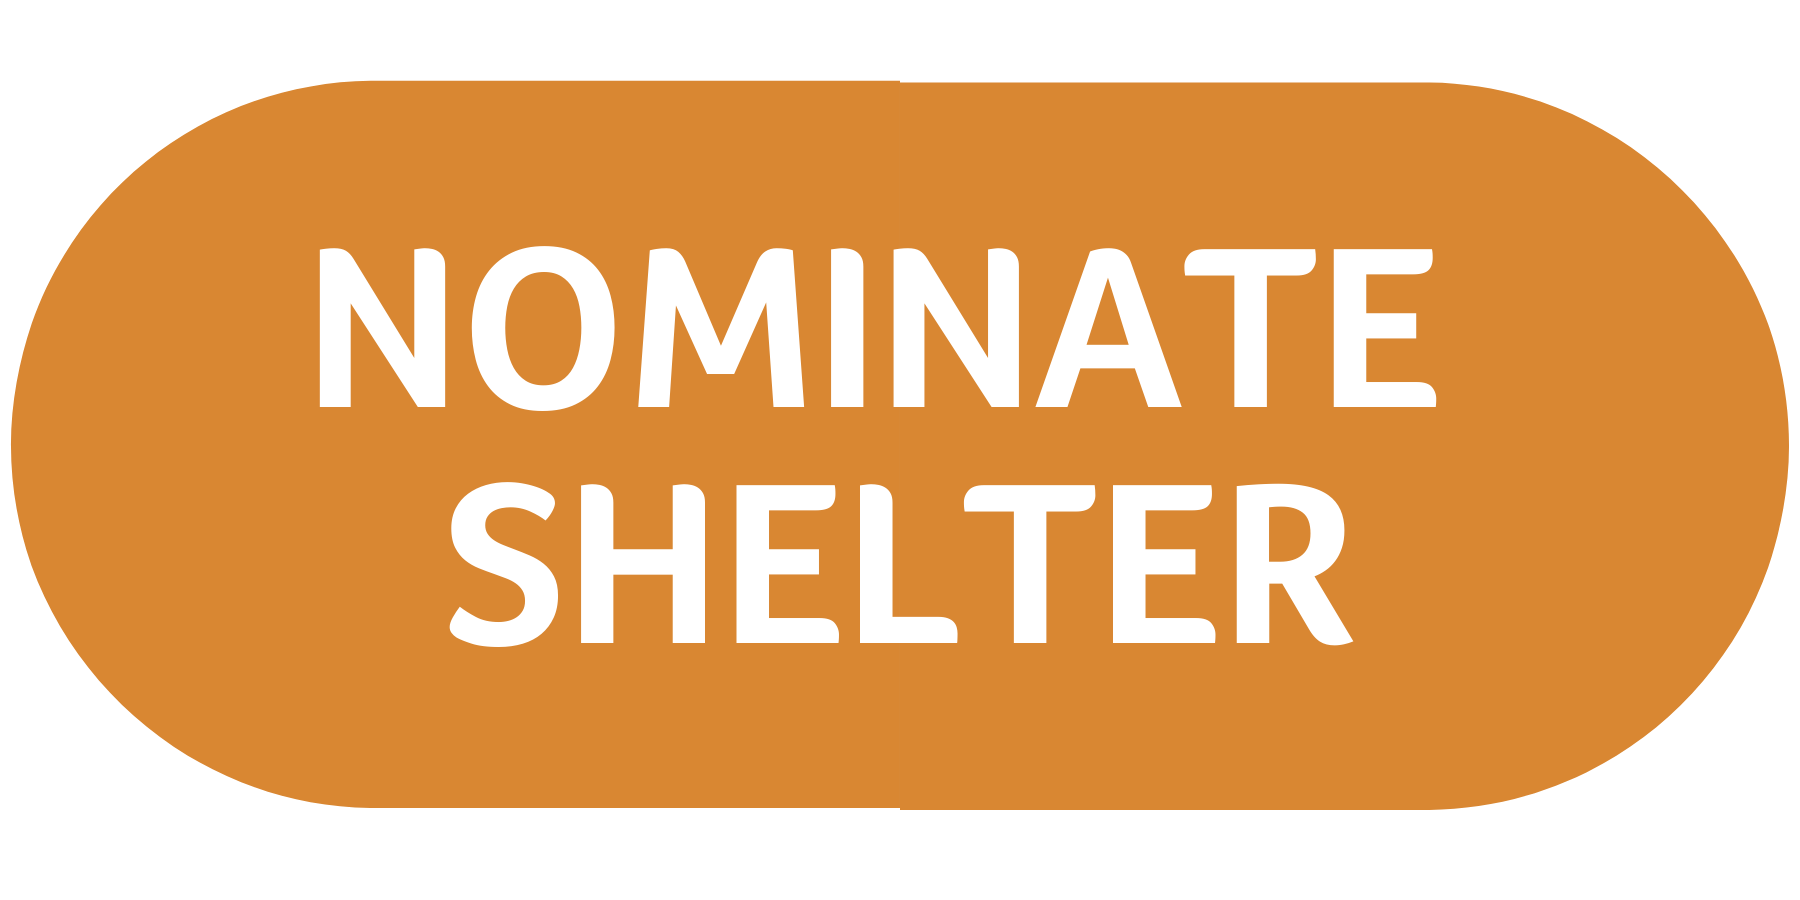 Nominate shelter button